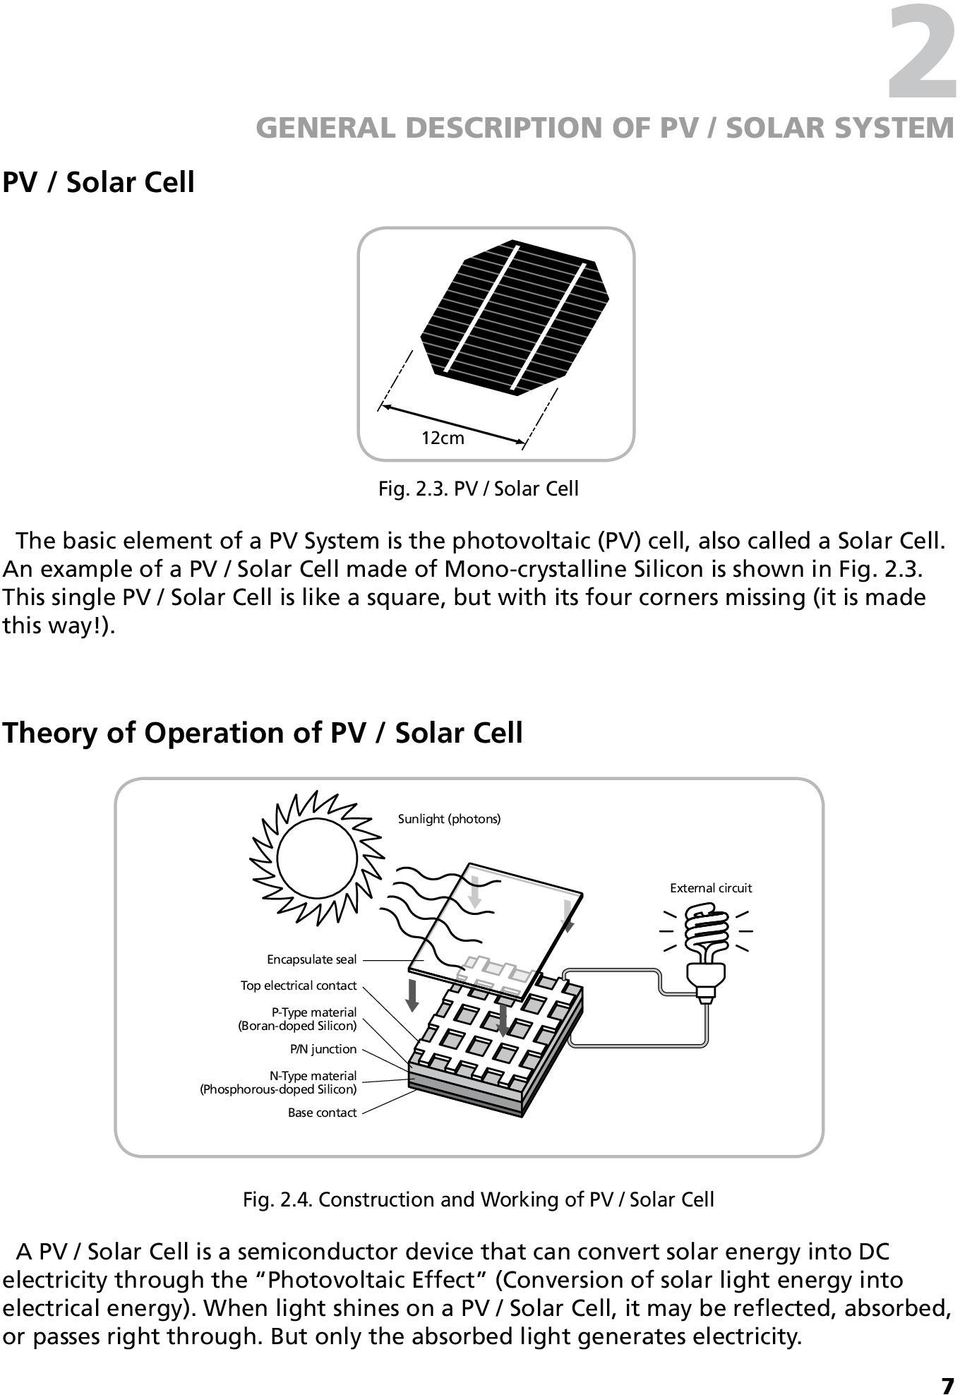 Theory of Operation of PV / Solar Cell Sunlight (photons) External circuit Encapsulate seal Top electrical contact P-Type material (Boran-doped Silicon) P/N junction N-Type material